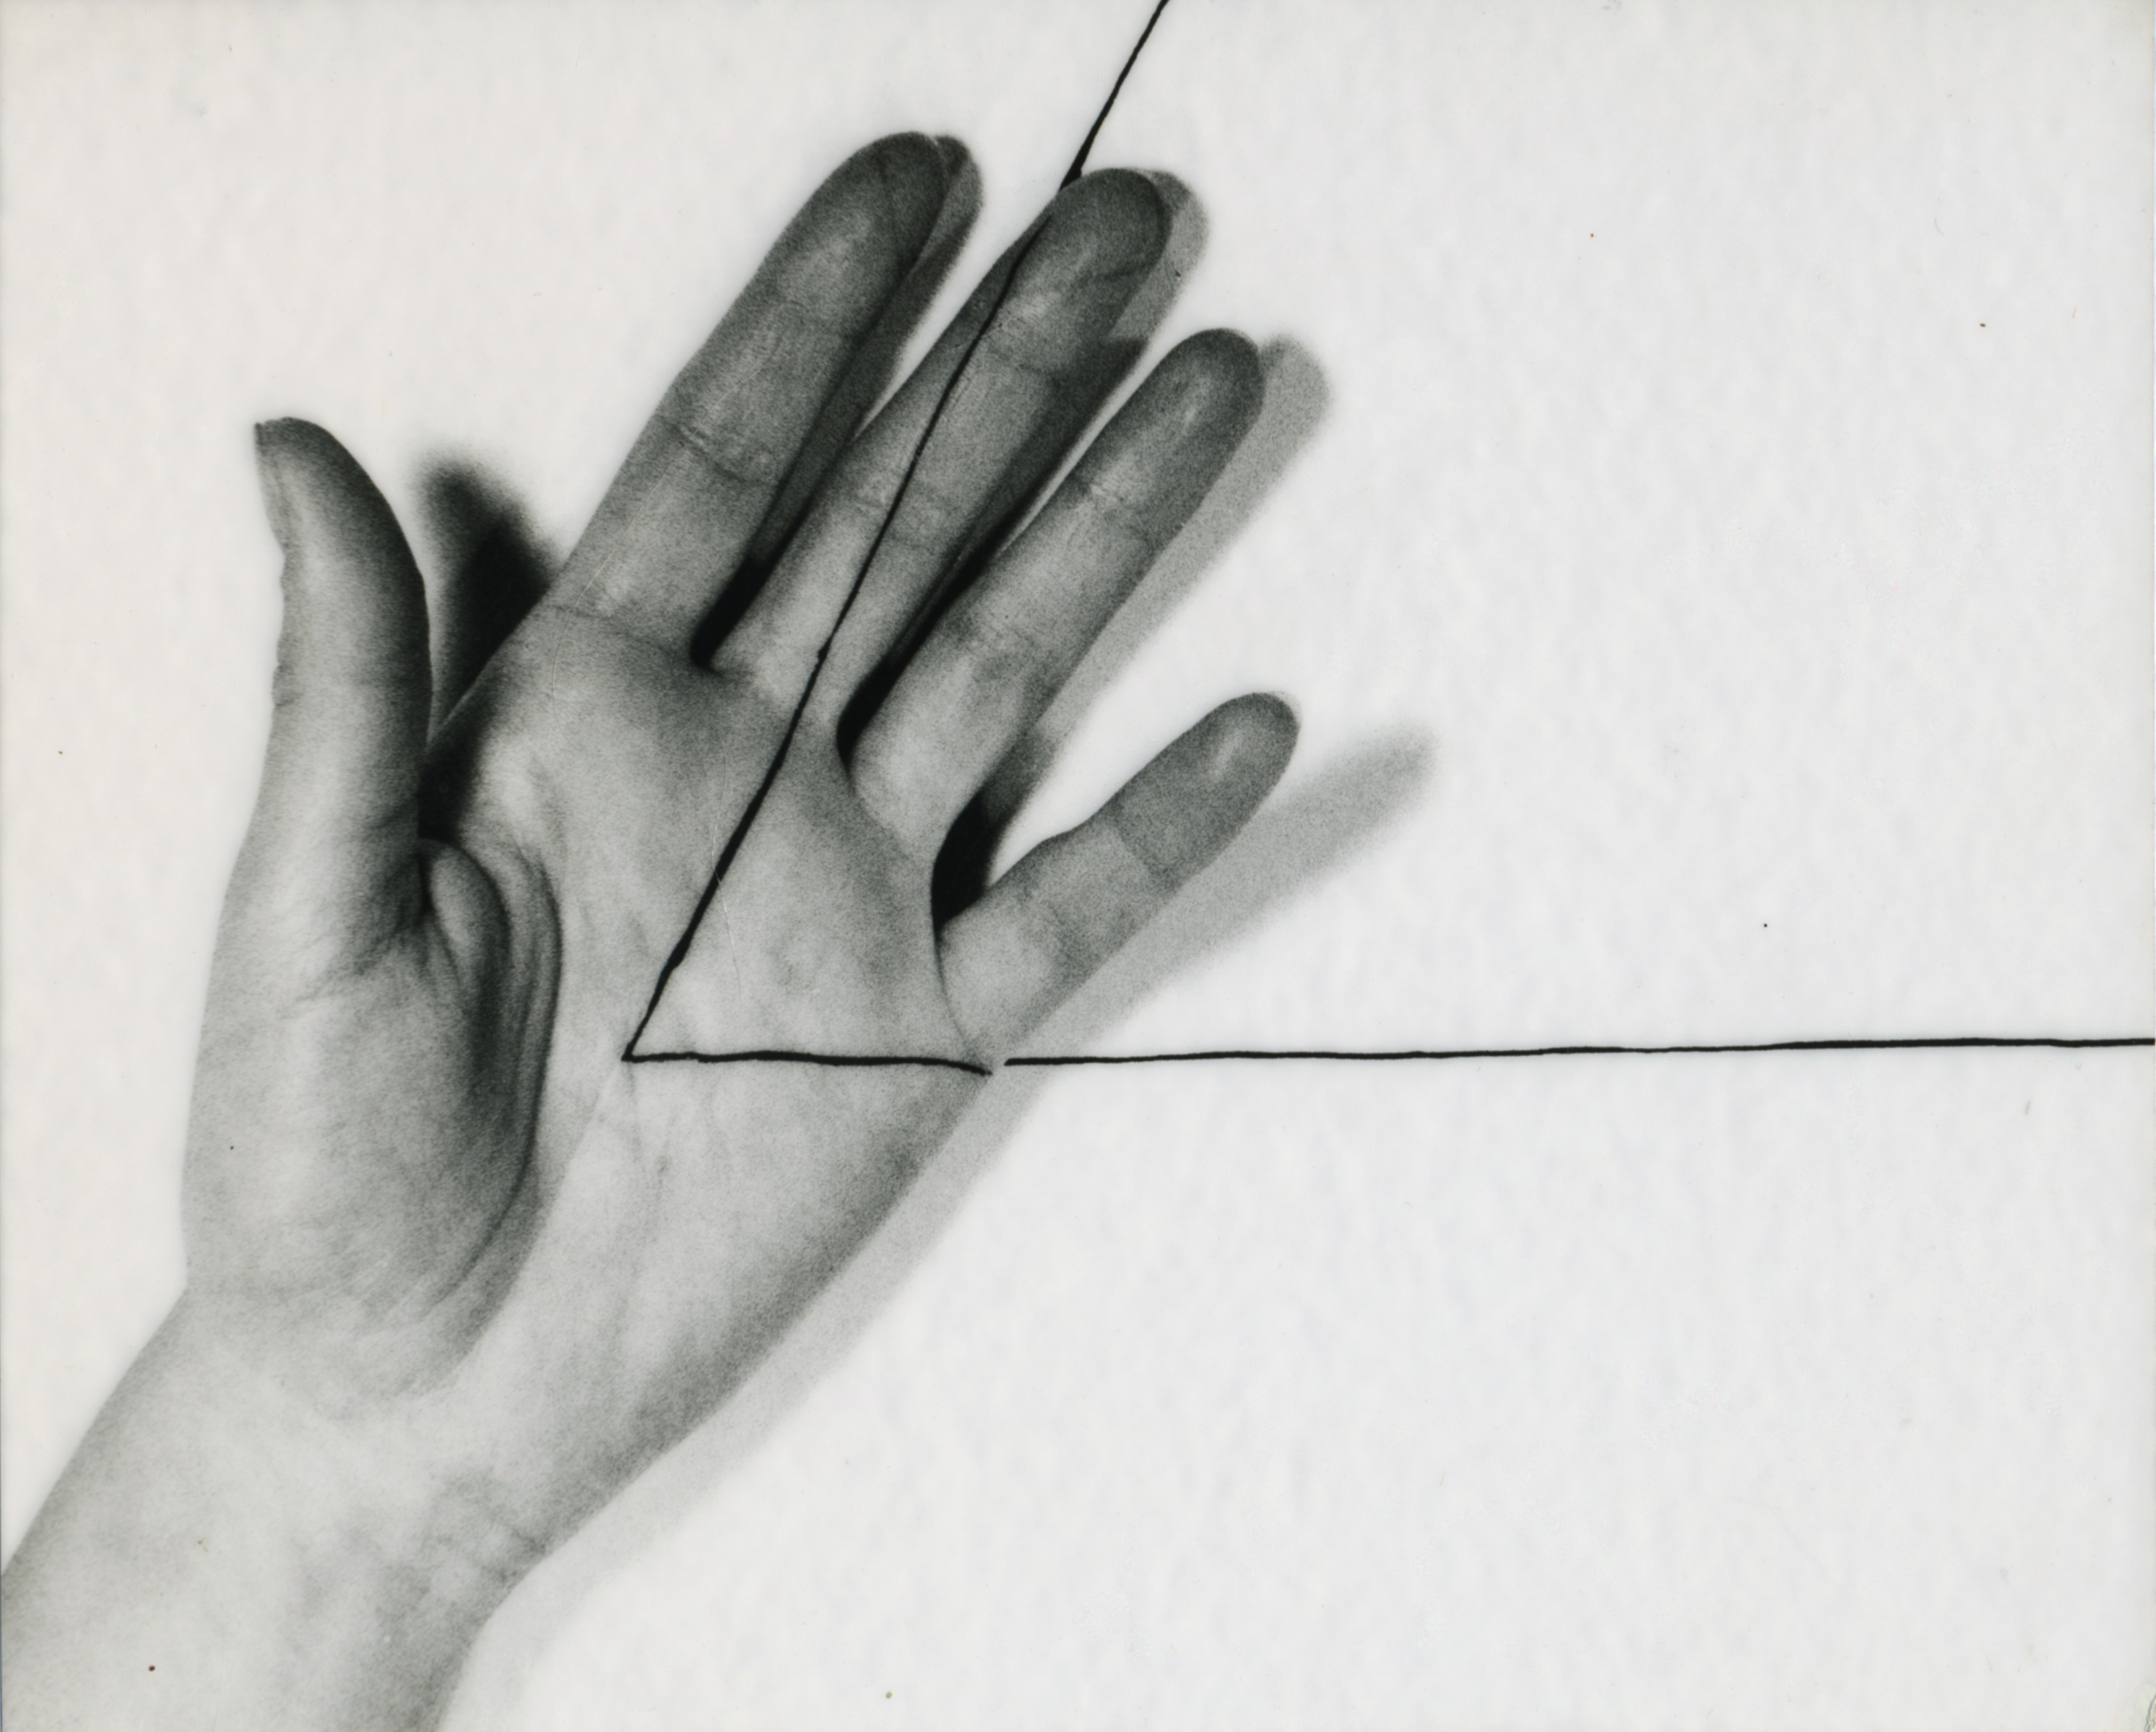 Untitled triangle left hand 1973 vintage copy